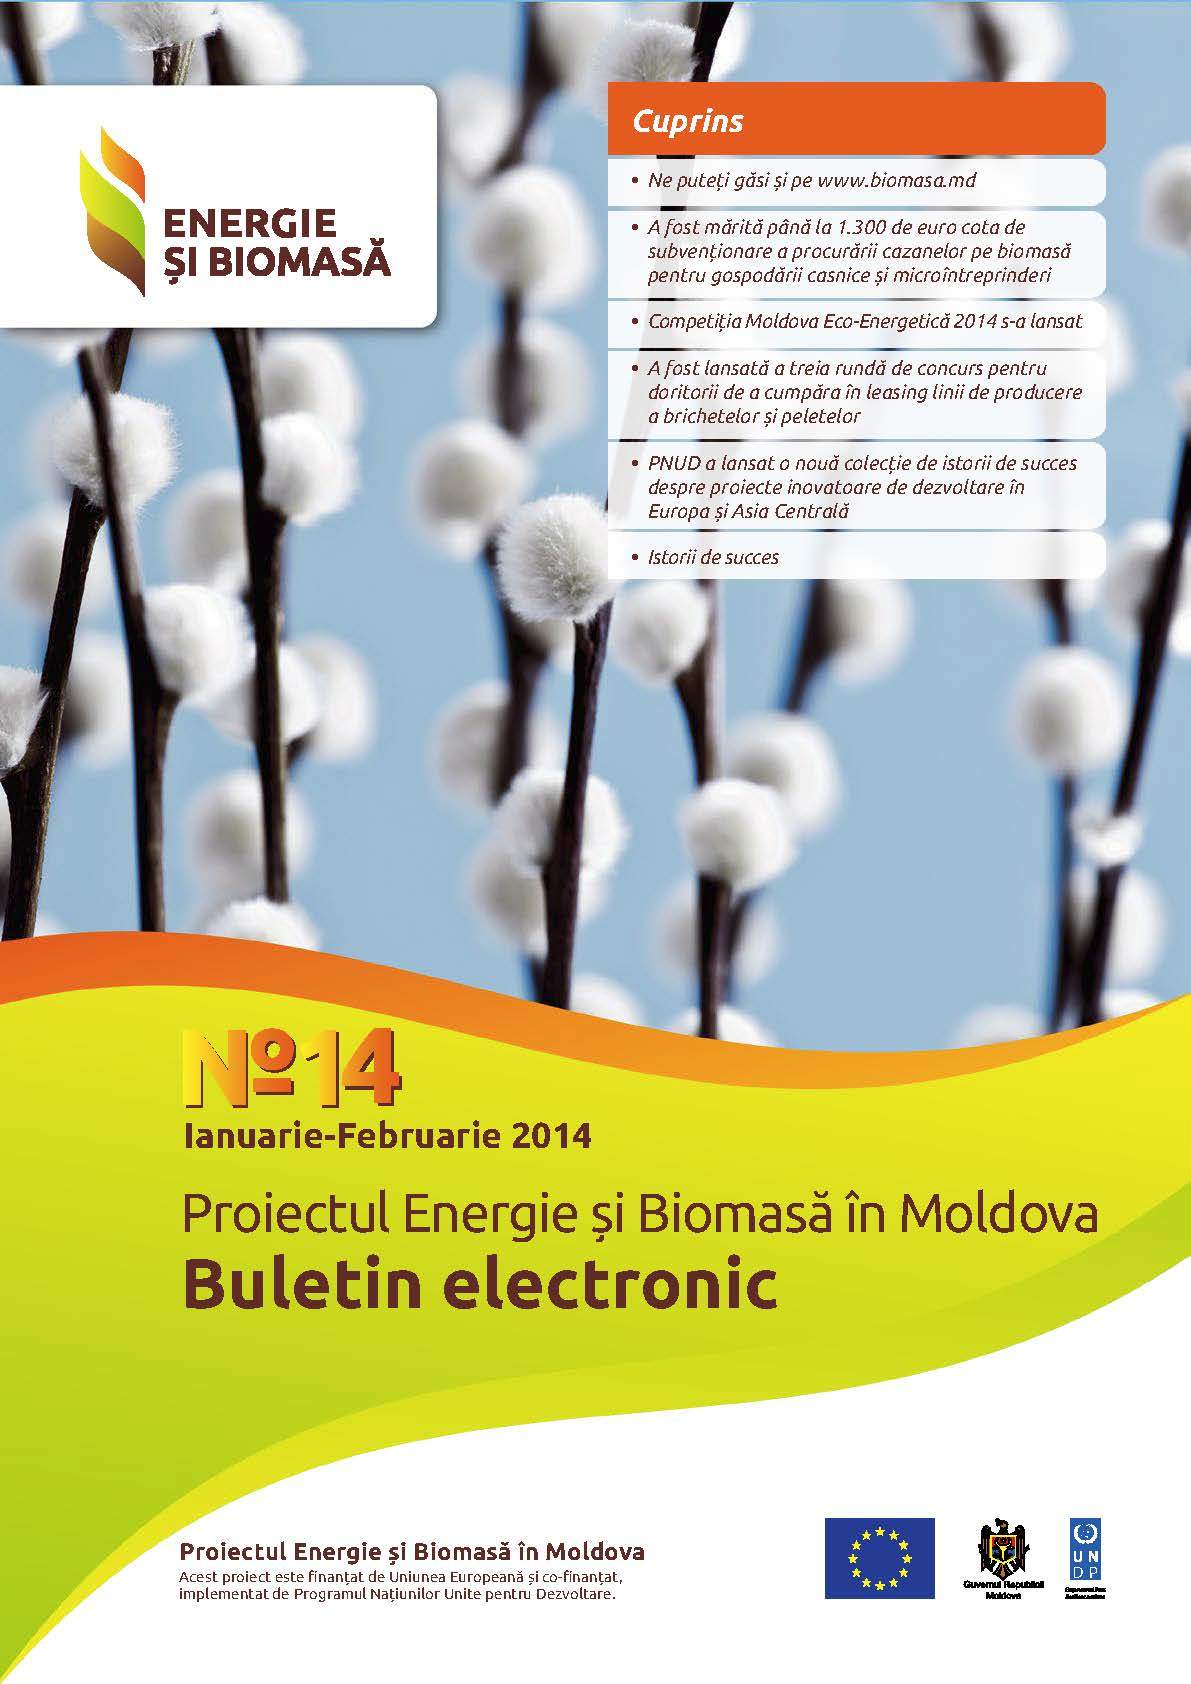 Biomass Energy and Electronic Bulletin № 14